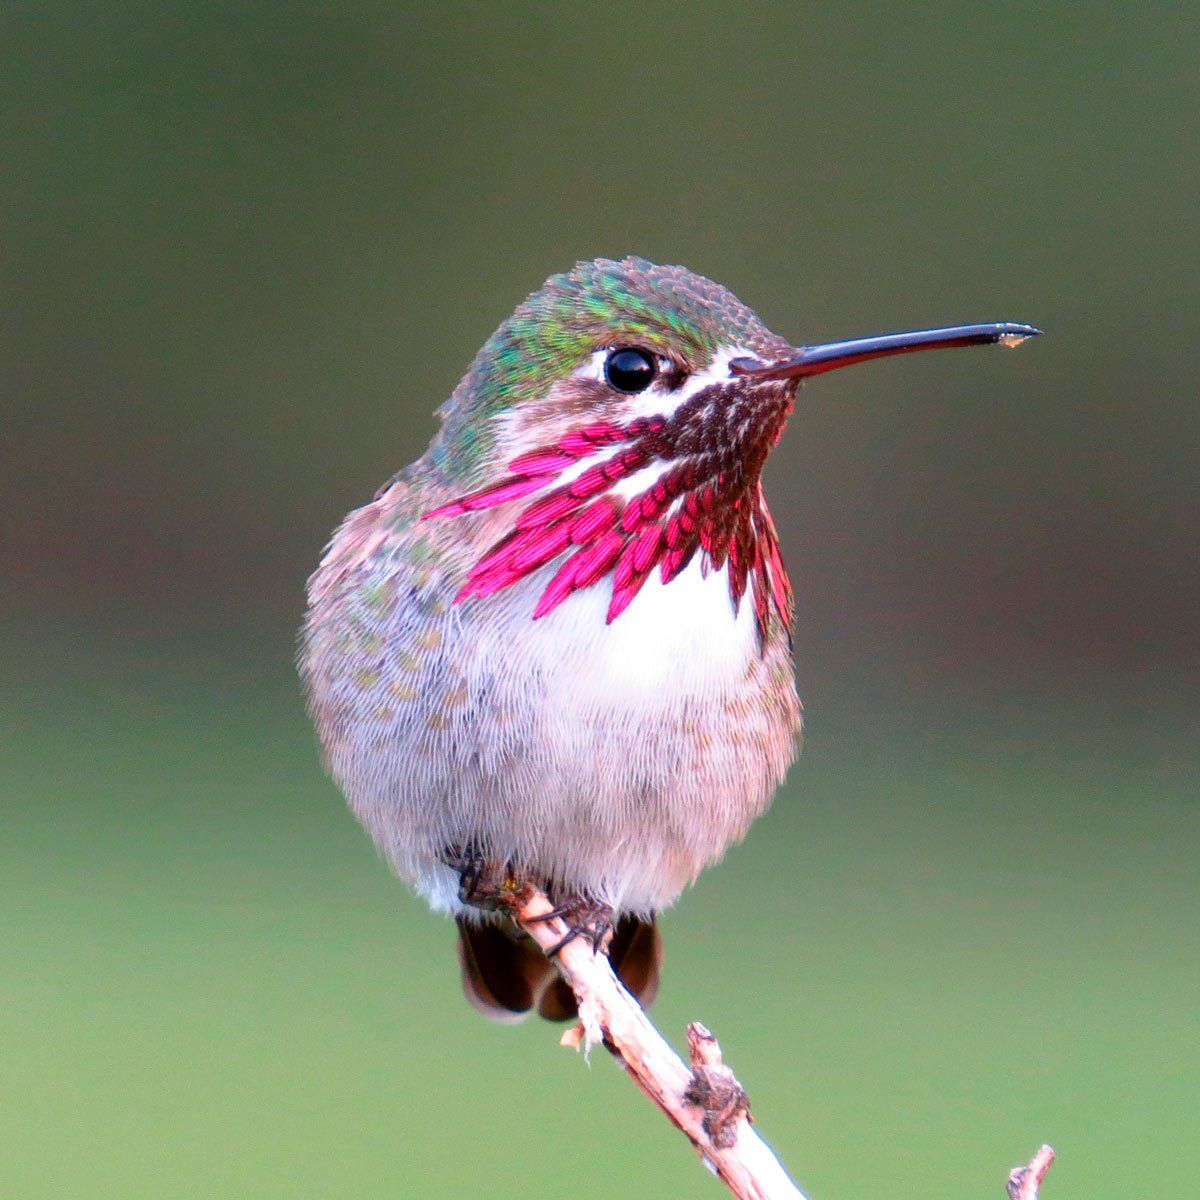 What Varities Of Birds Are Visiting Your Backyard: 10 Incredible Hummingbird Species You Could See In Your